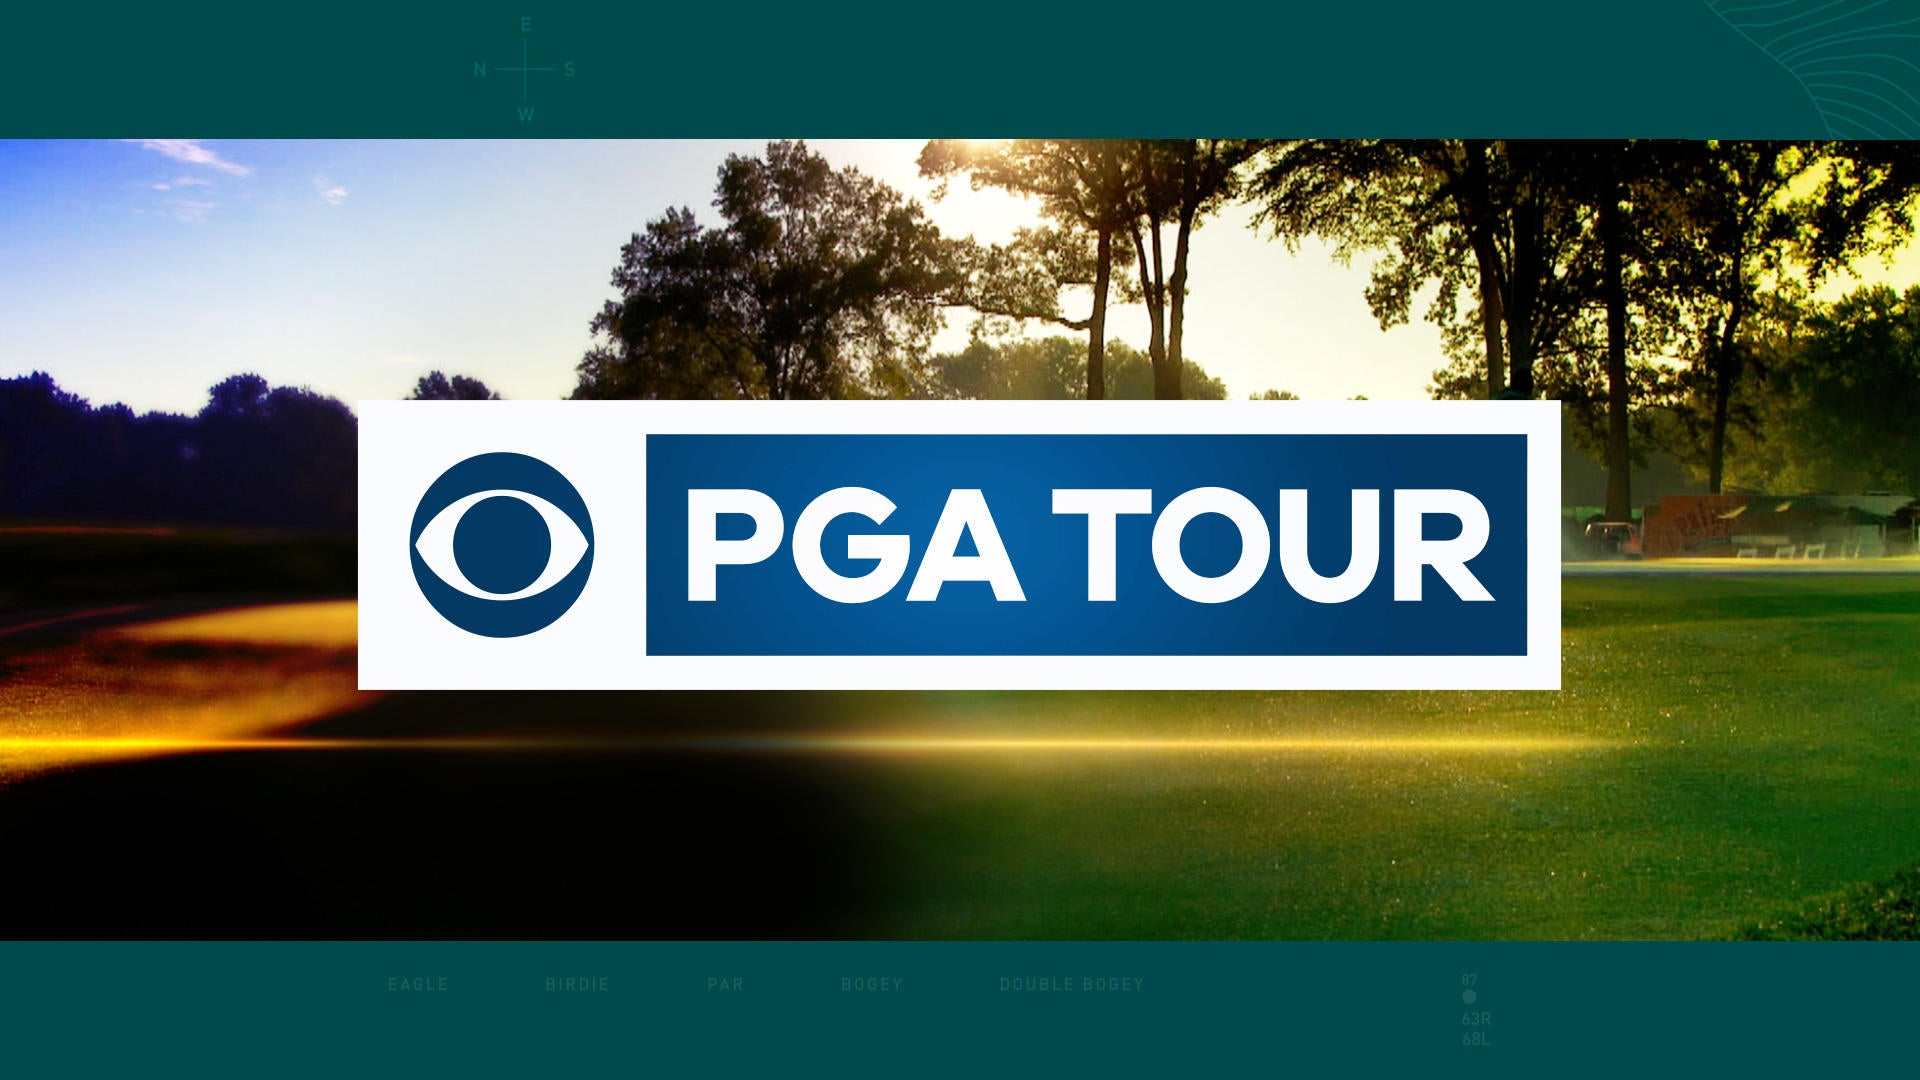 pgatour-evergreen-ott-1920x1080